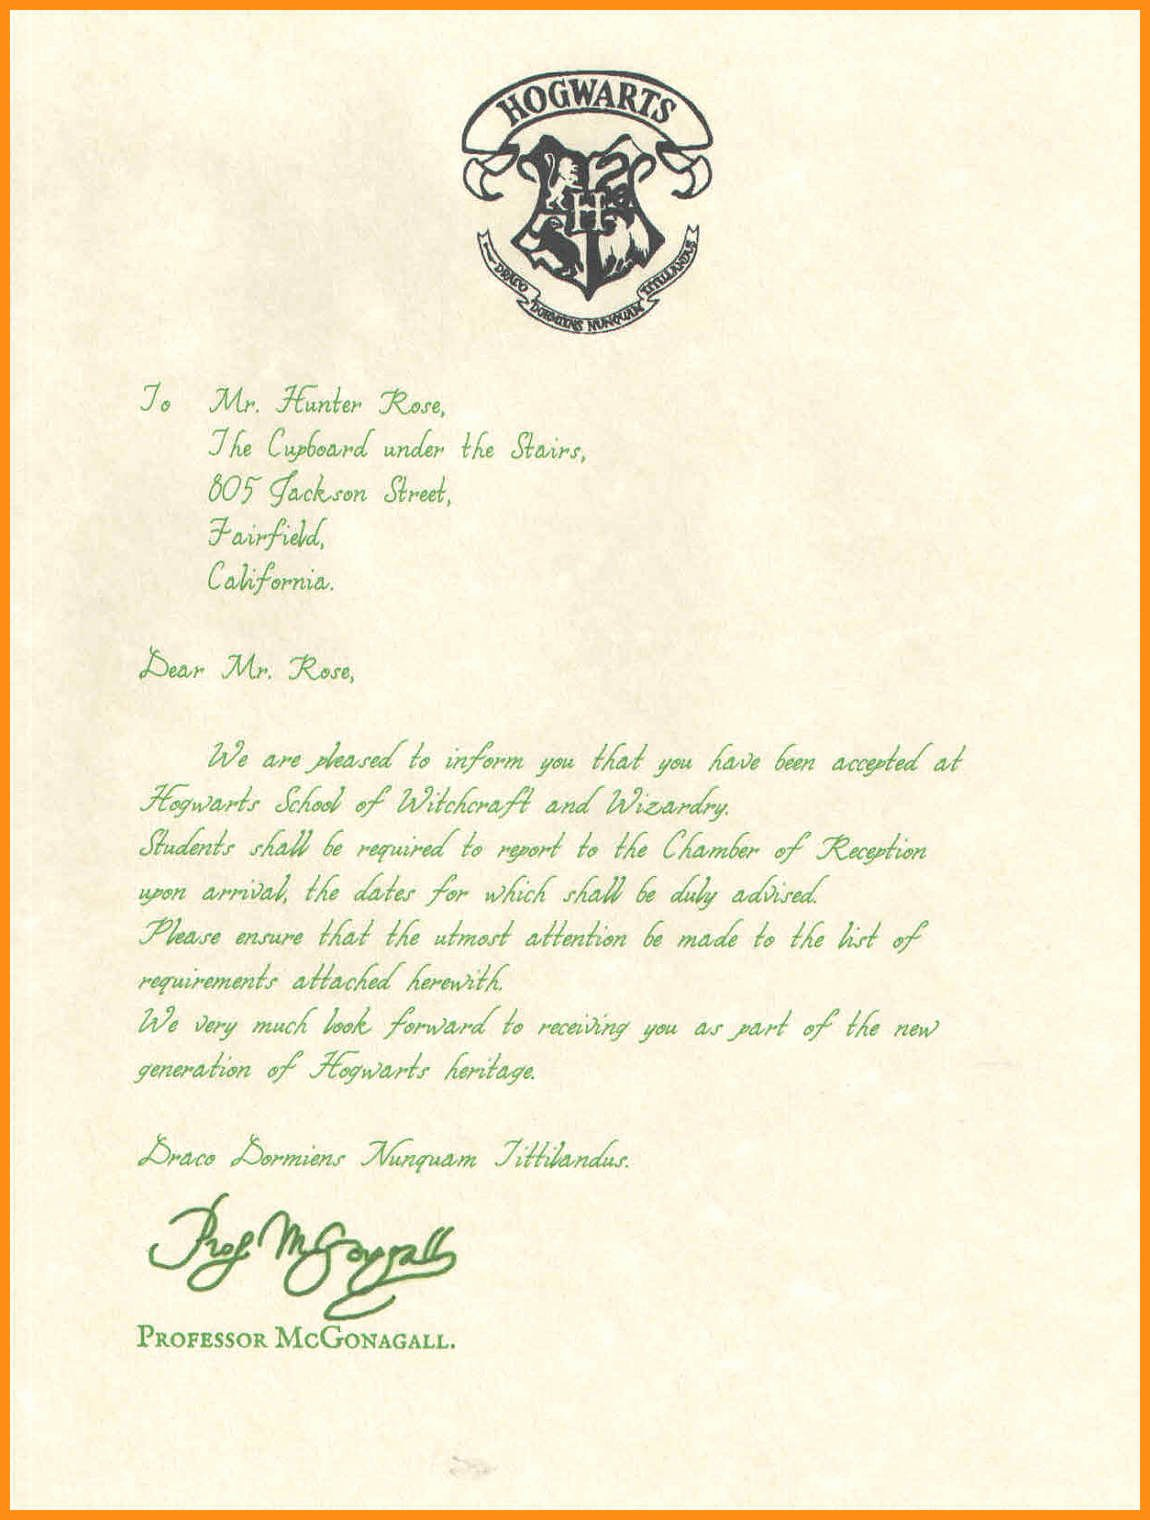 Harry Potter Acceptance Letter Template Inspirational 19 Harry Potter Hogwarts Acceptance Letter Pdf